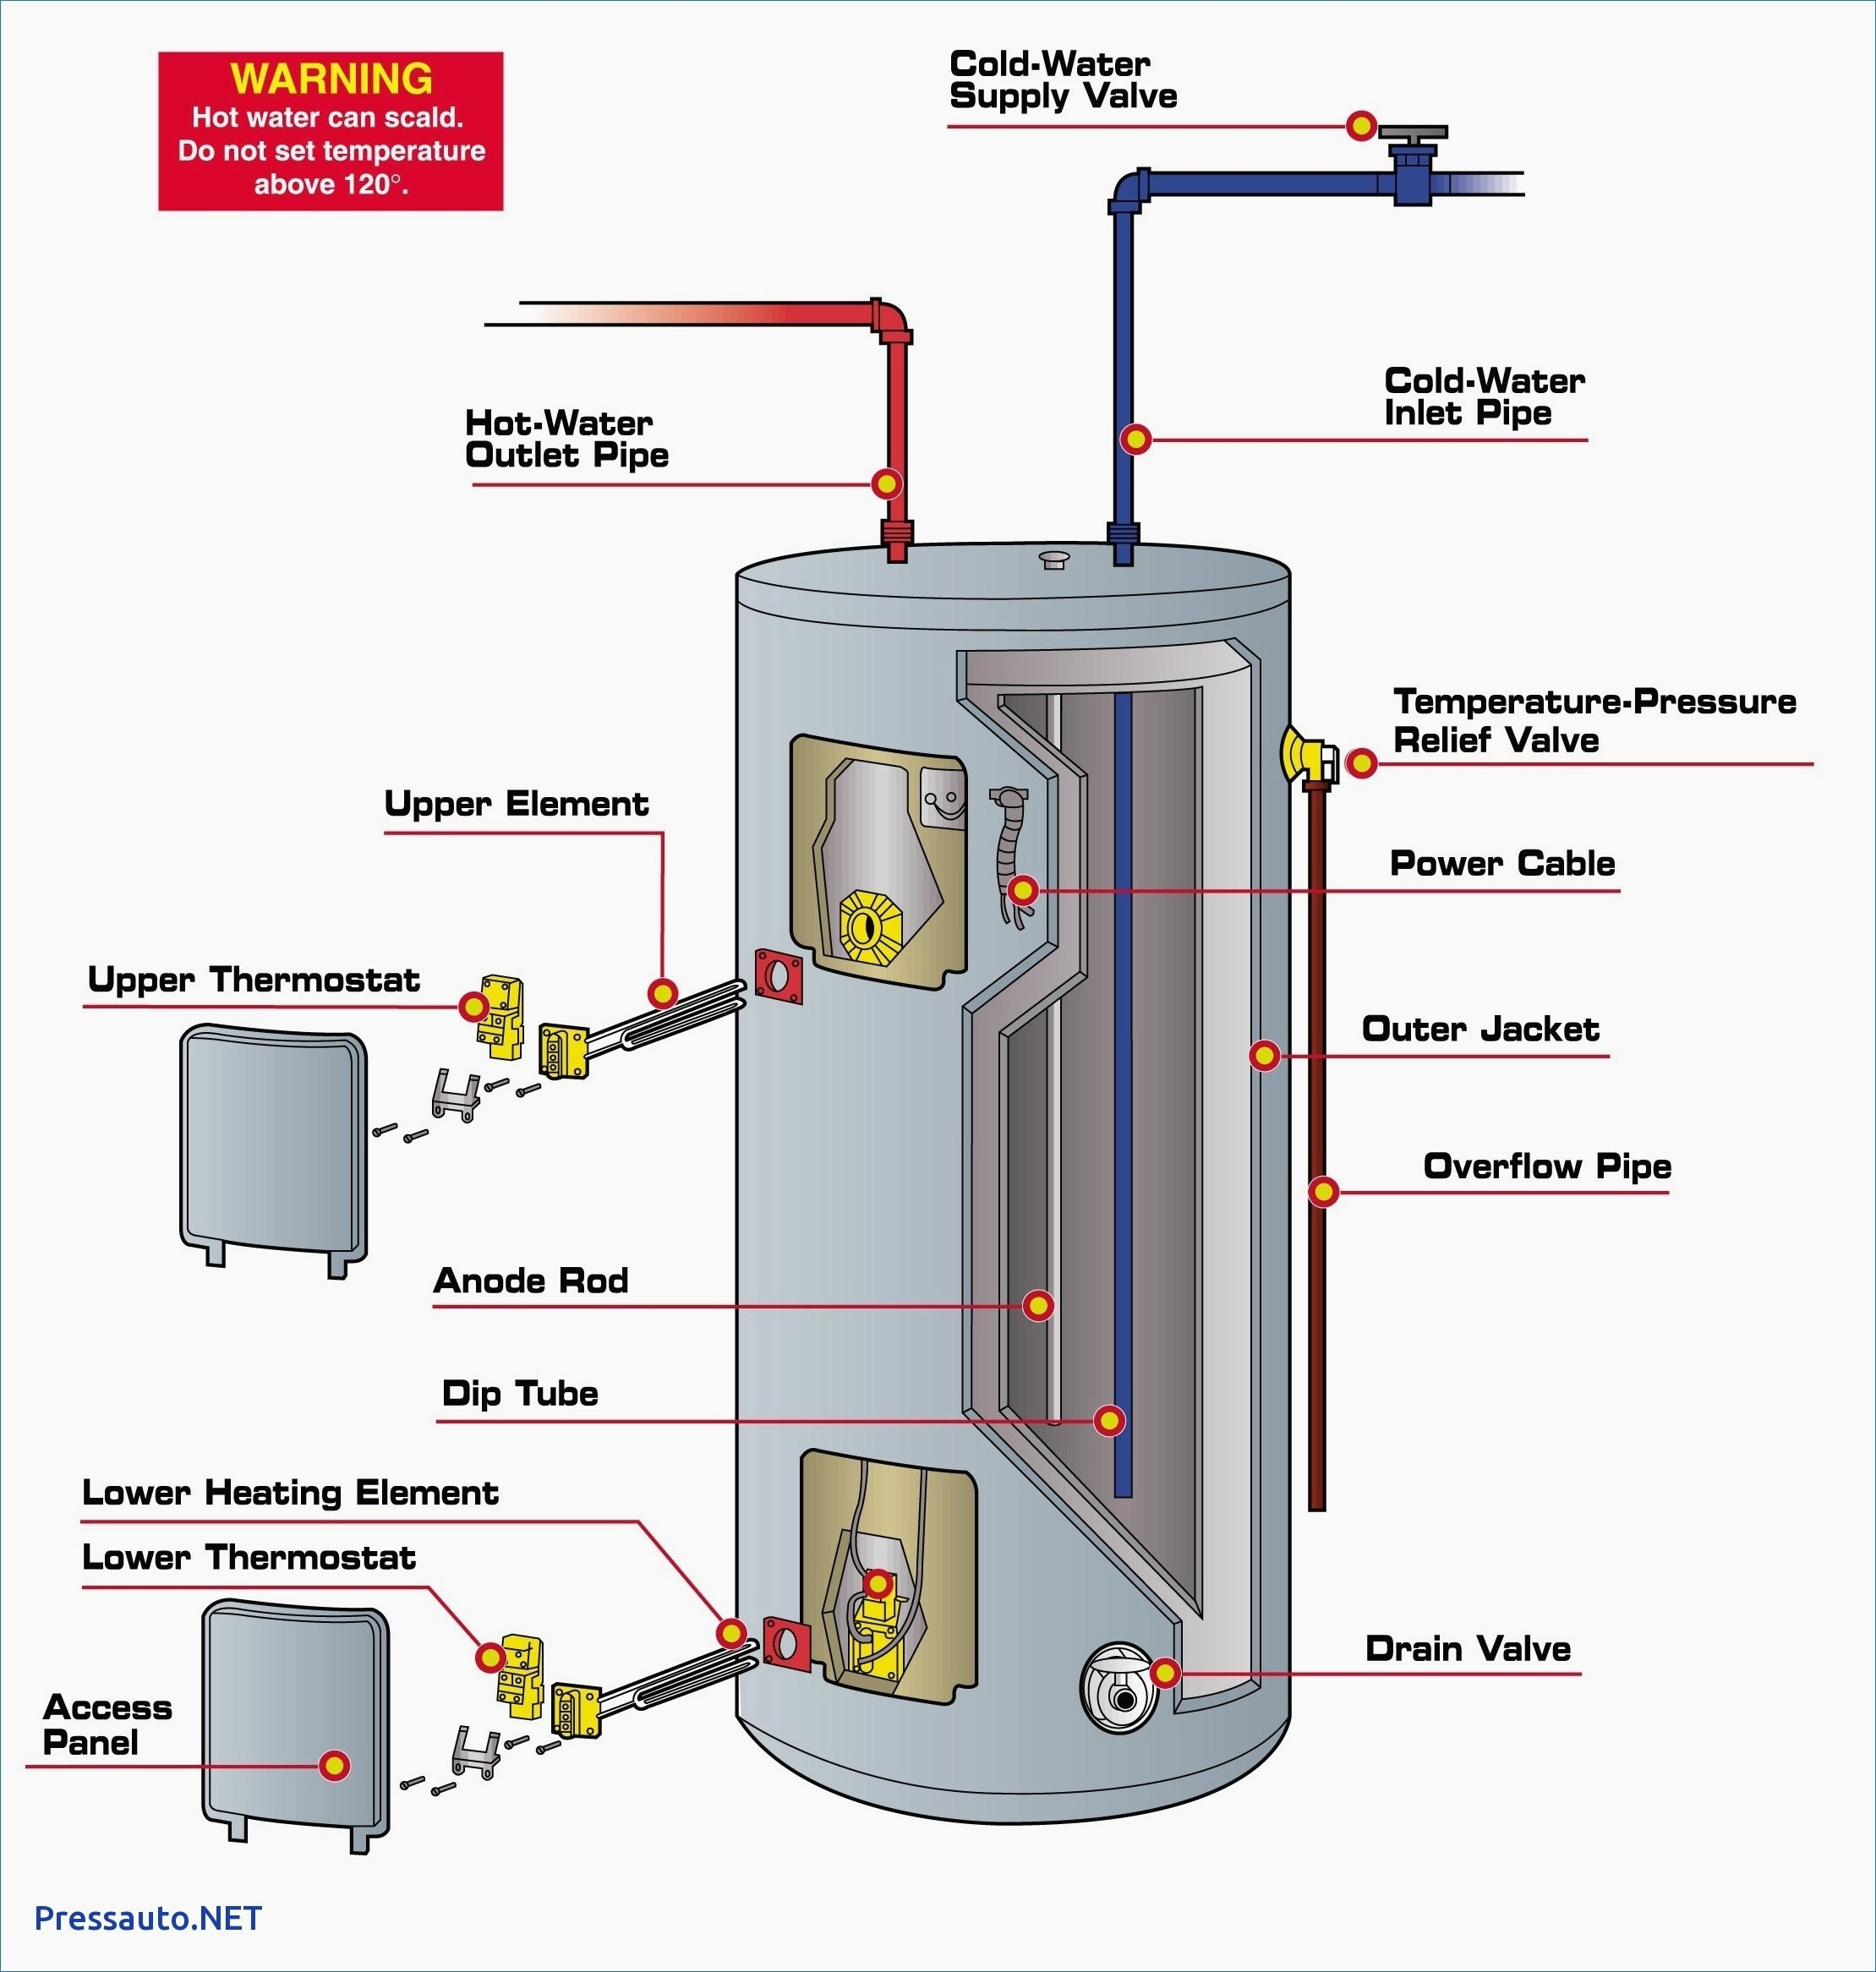 220v hot water heater wiring diagram | free wiring diagram electric baseboard heater wiring diagram for 220